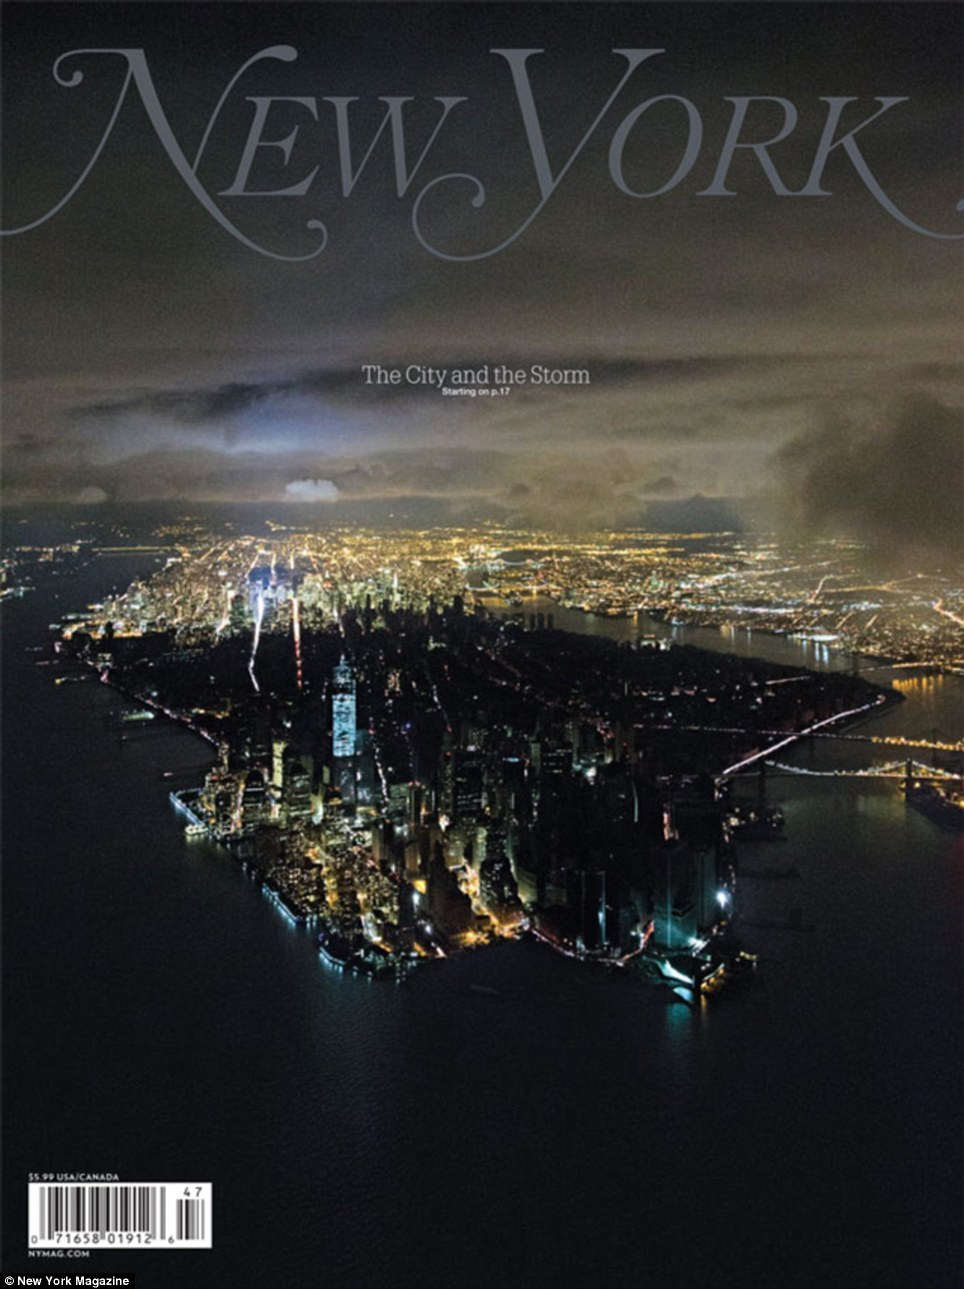 Hurricane Sandy - New York Magazine cover - Iwan Baan